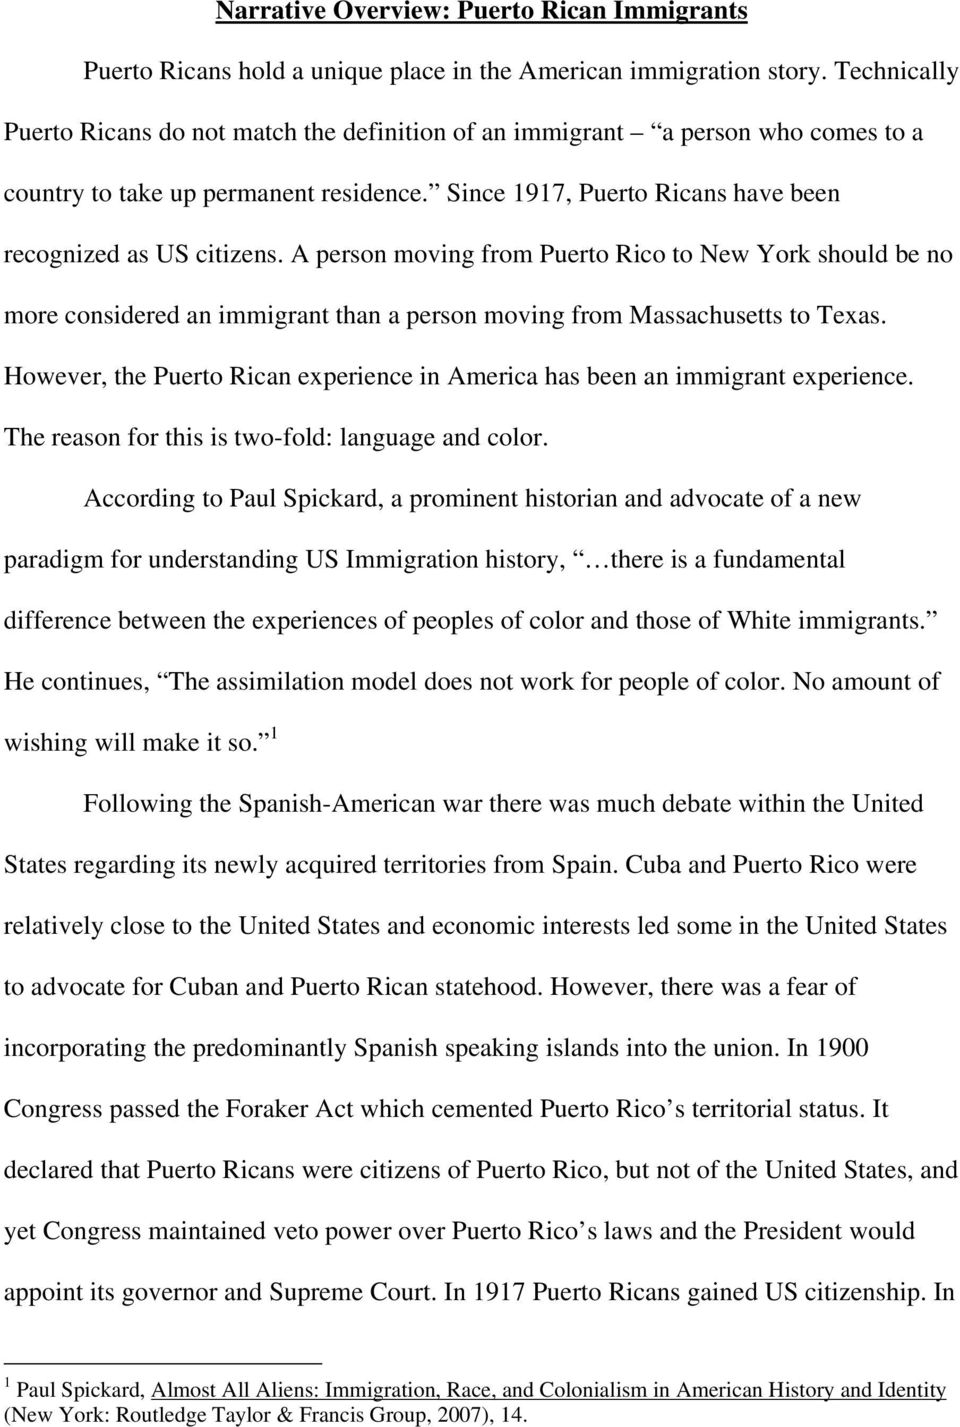 A person moving from Puerto Rico to New York should be no more considered an immigrant than a person moving from Massachusetts to Texas.